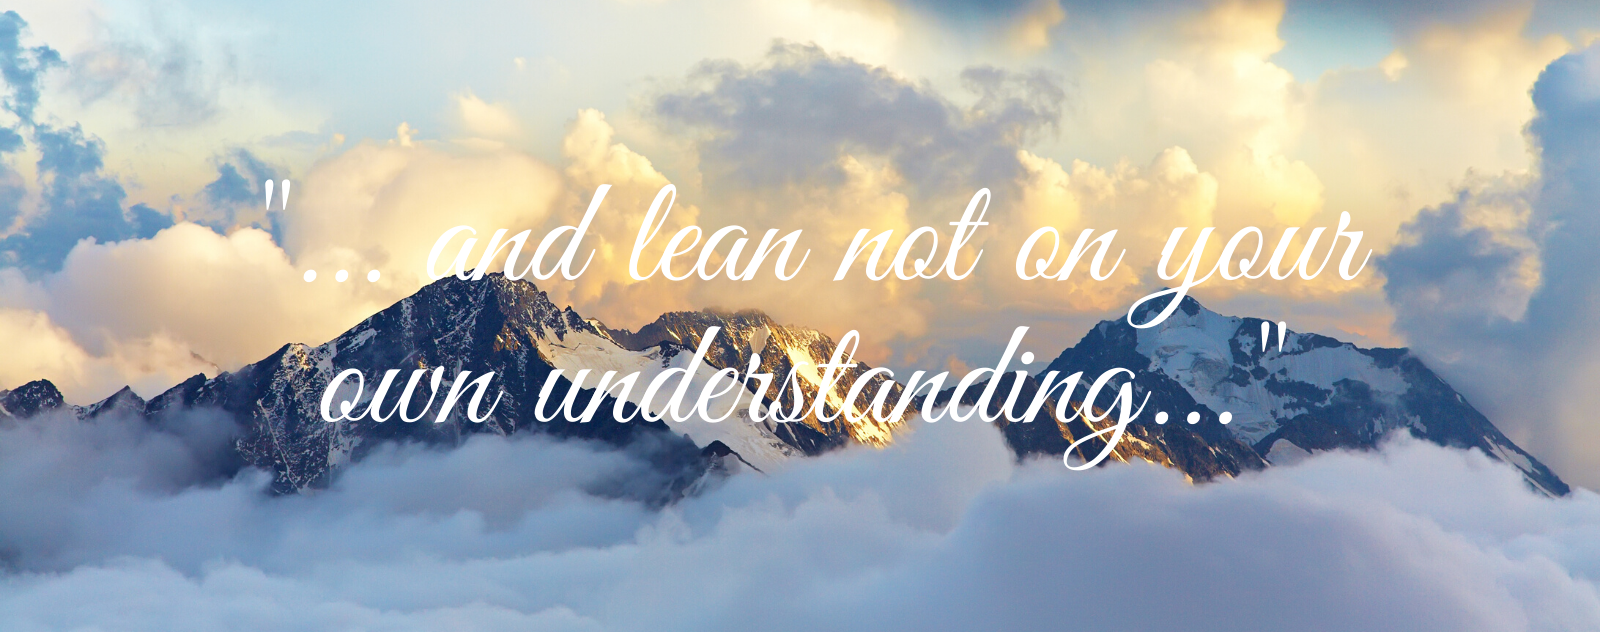 And lean not on your own understanding